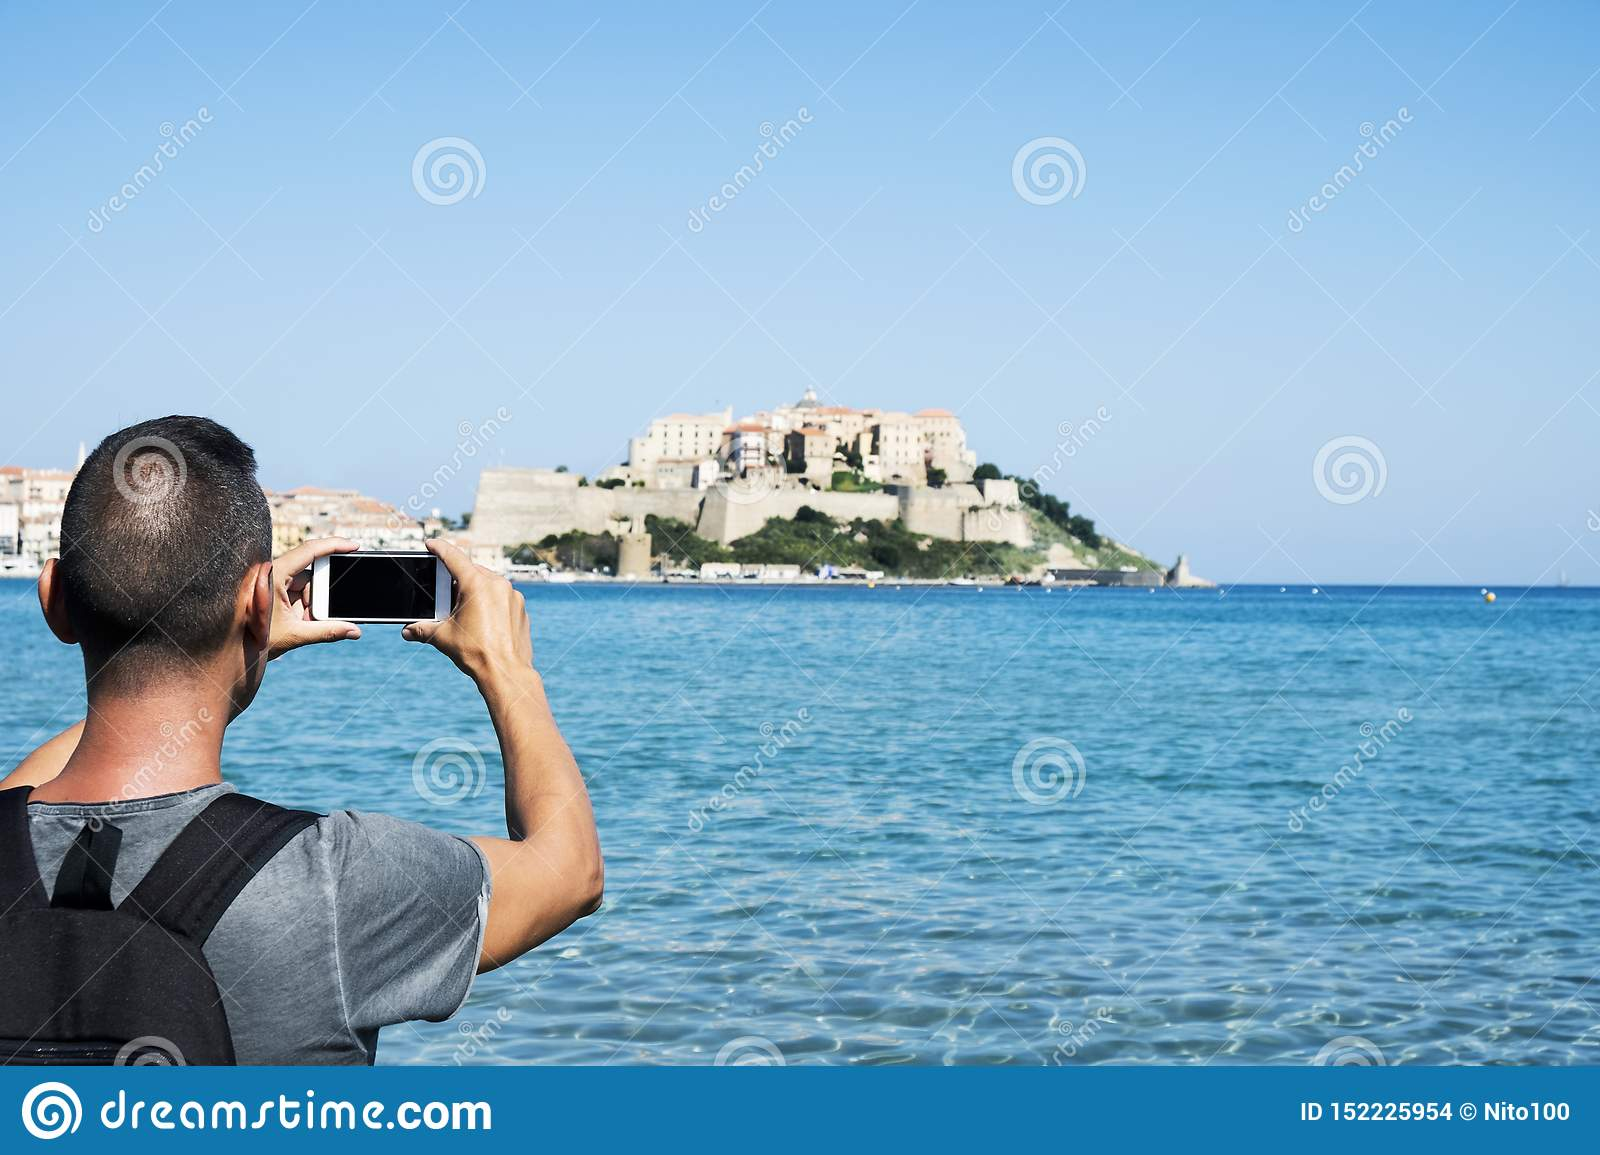 Man taking a picture of Calvi, in Corsica, France